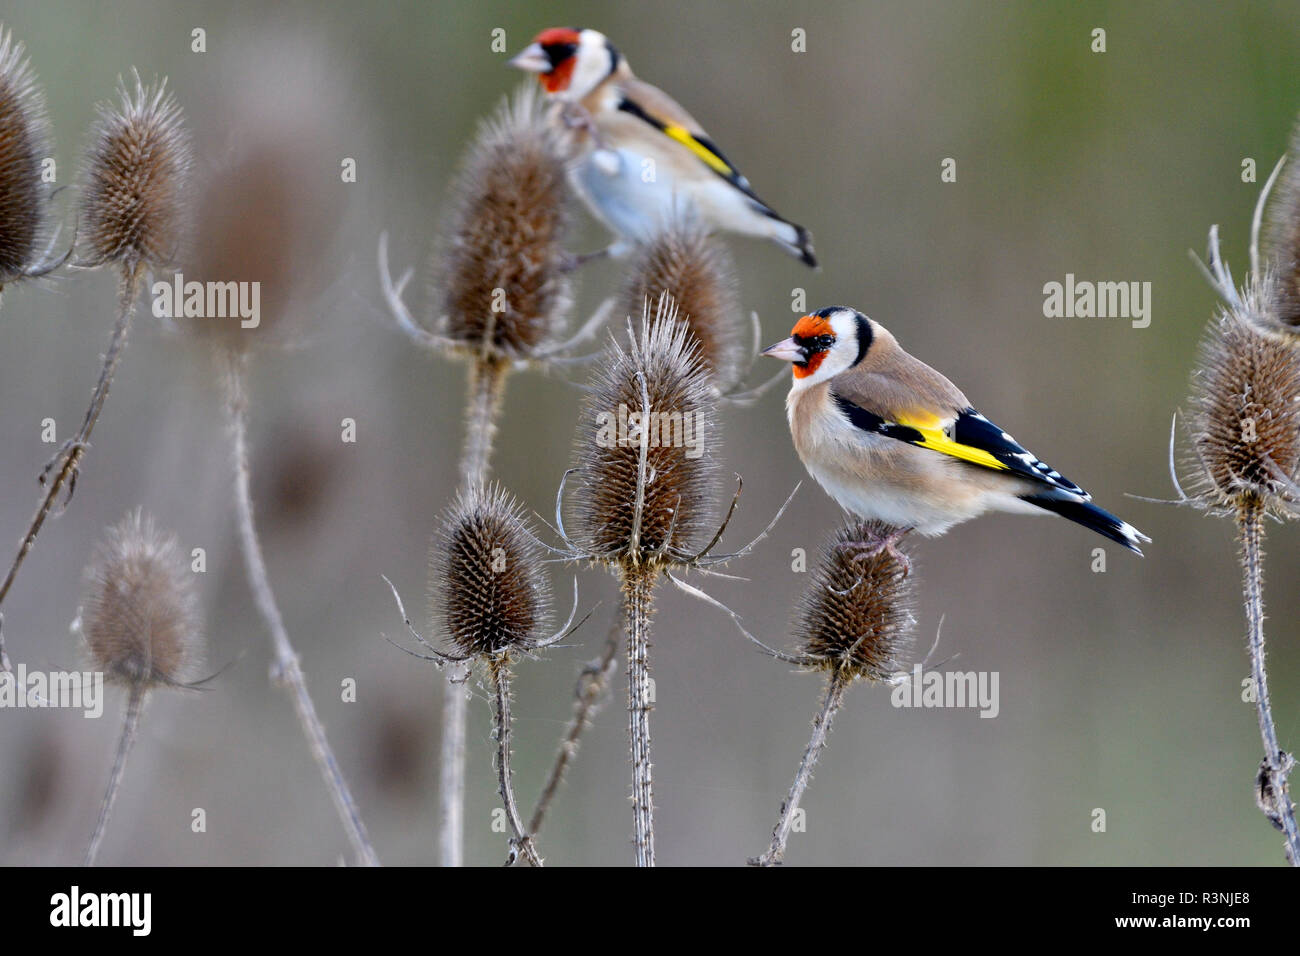 European Goldfinches (Carduelis carduelis) feeding on teasel seeds, France - Stock Image